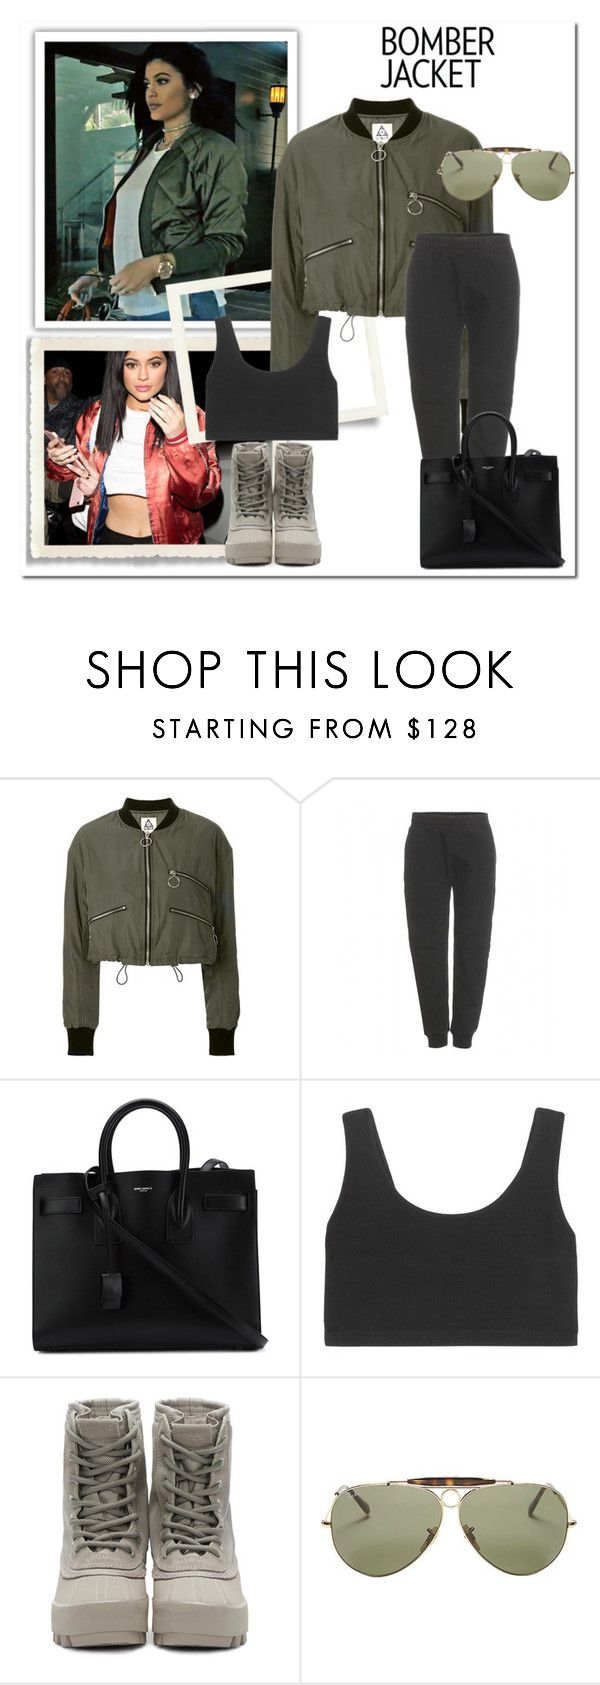 """""""bomber jacket"""" by nuria2223 ❤ liked on Polyvore featuring mode, UNIF, adidas Originals, Yves Saint Laurent, Ray-Ban, women's clothing, women, female, woman en misses"""